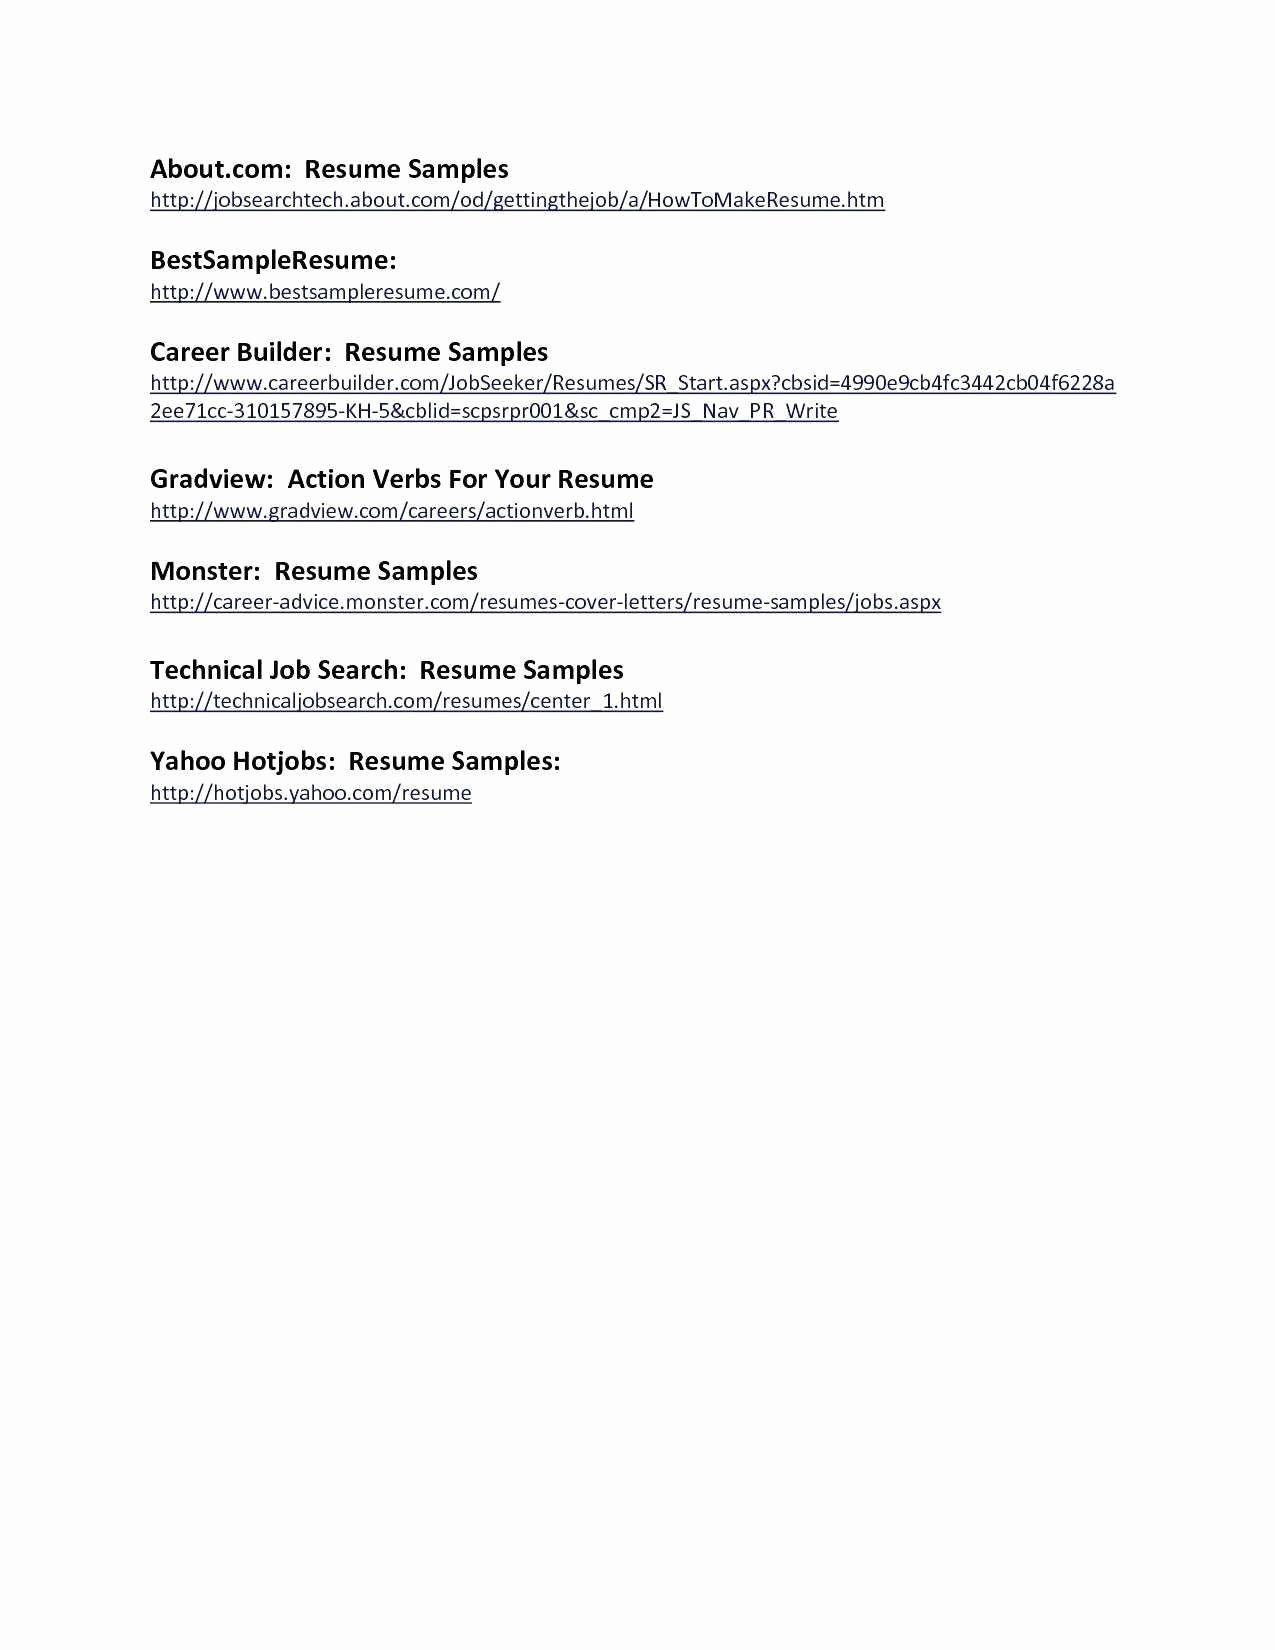 Confidentiality Statement Template